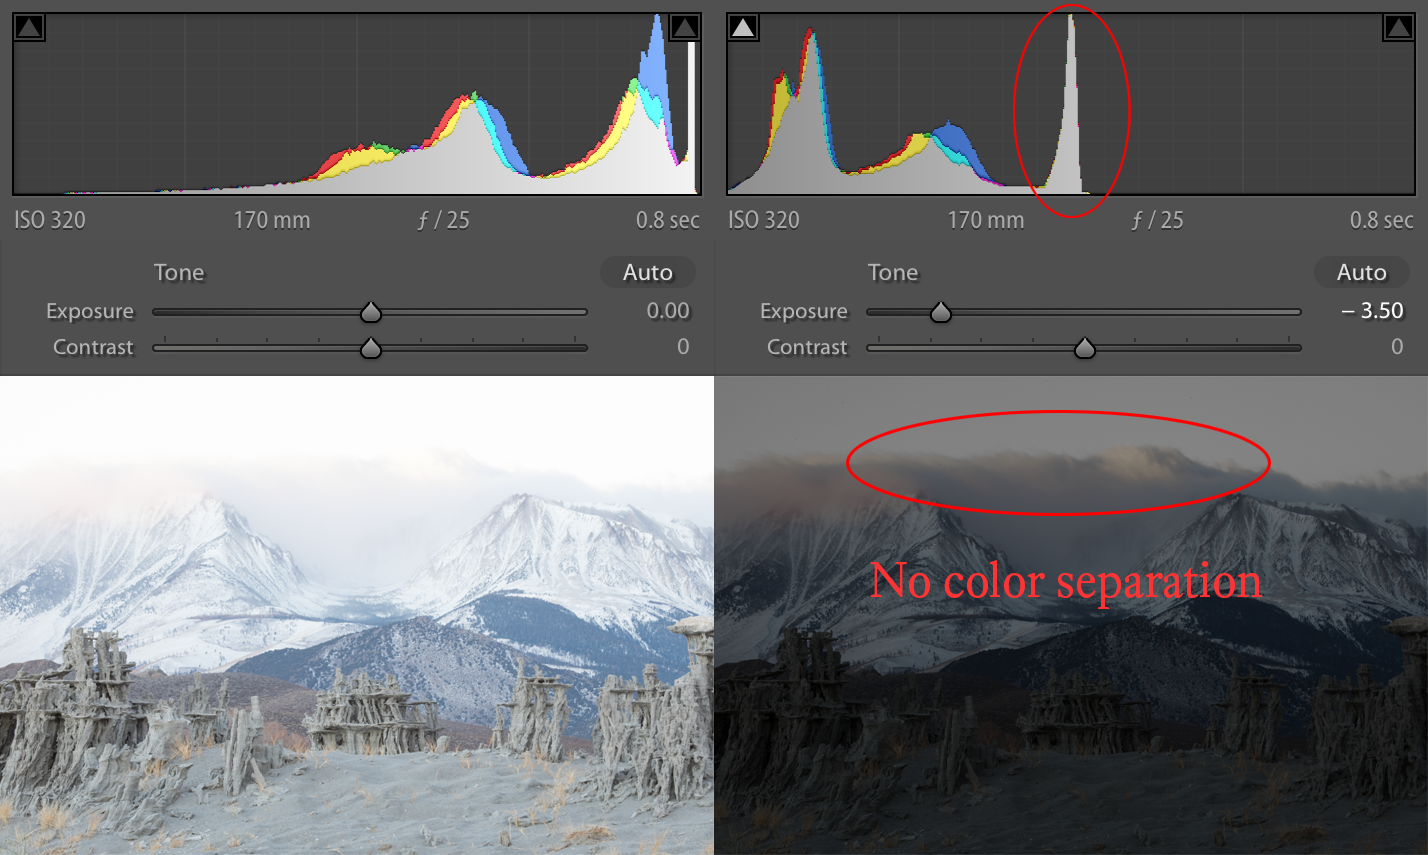 ETTR version shows no color separation when pulling the exposure down.